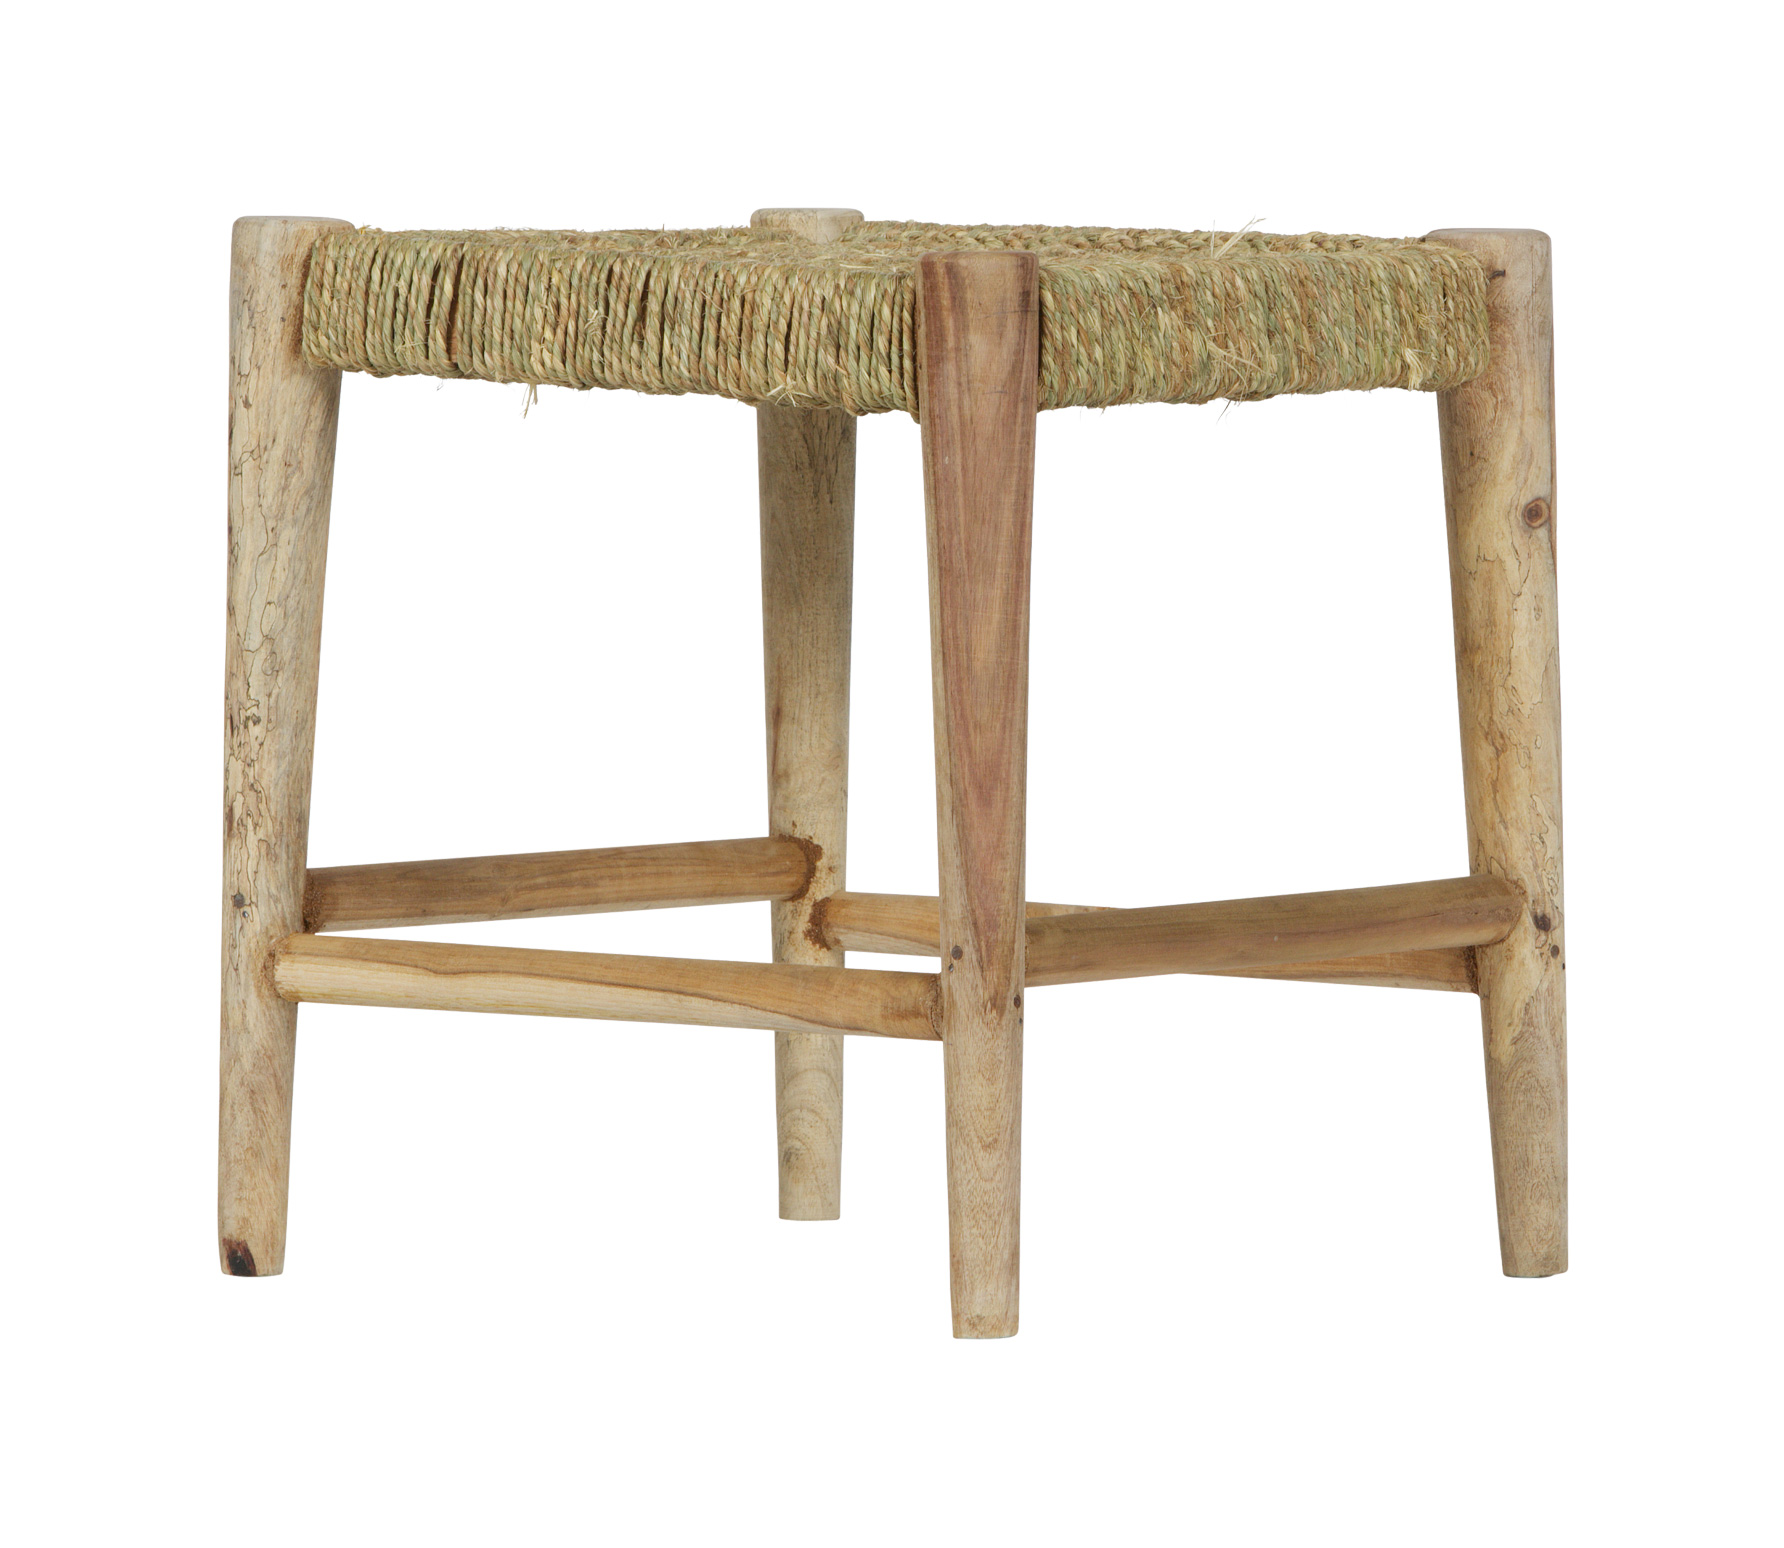 BePureHome Wicker kruk hout geweven touw naturel Wicker kruk naturel